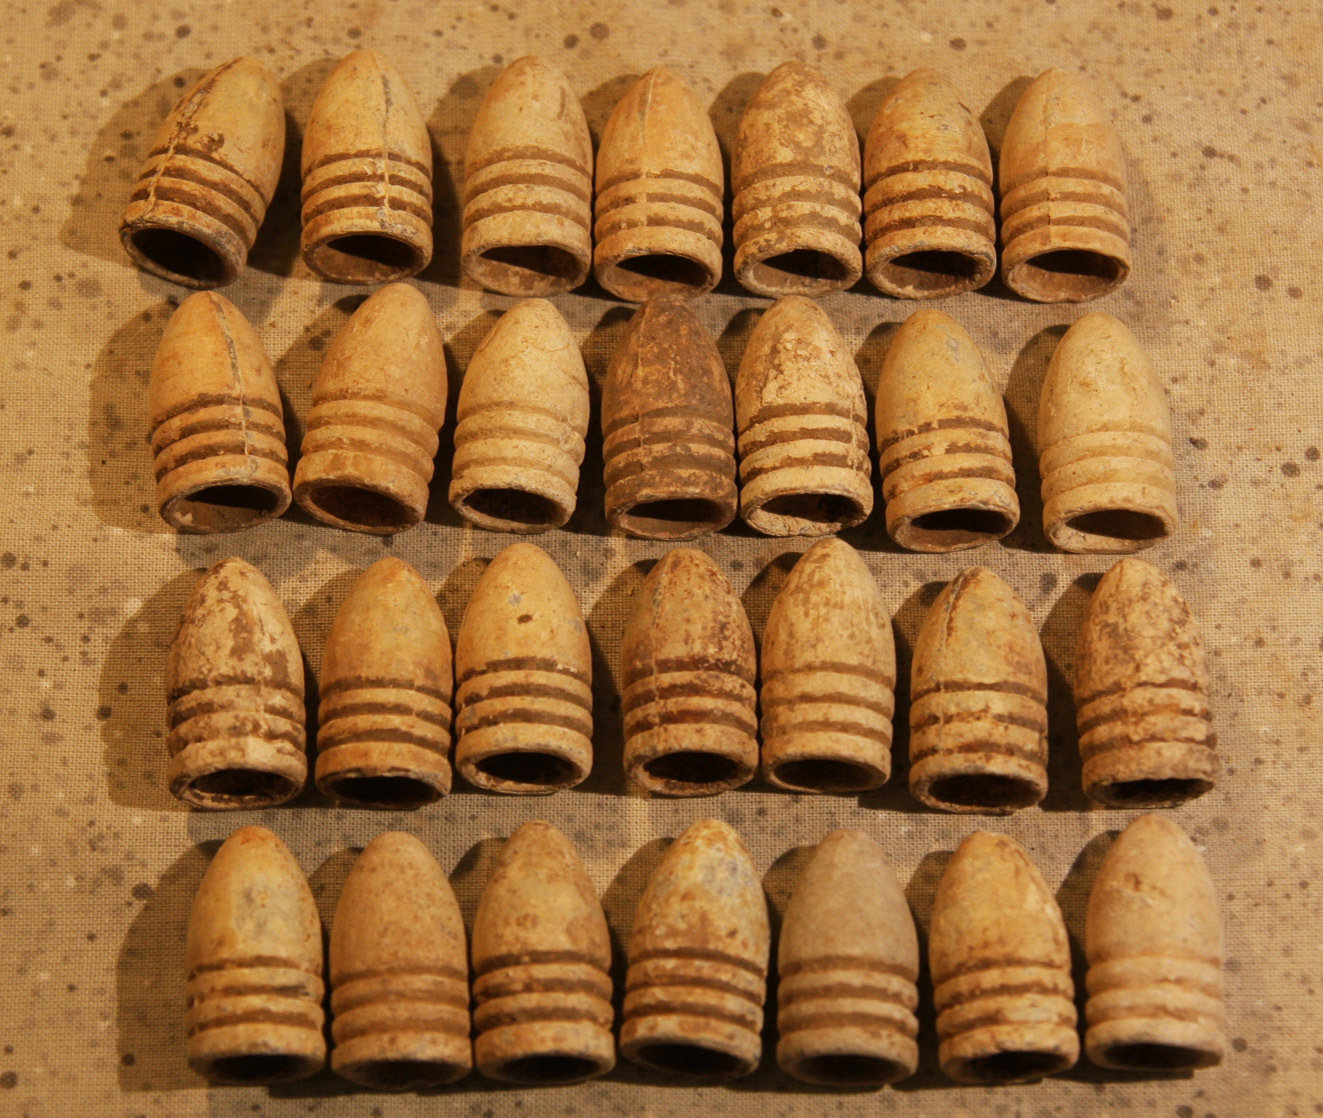 GETTYSBURG BULLETS FROM THE IVA ROSENSTEEL COLLECTION - Various Locations - Little Round Top, Devil's Den, etc. - YOU CHOOSE